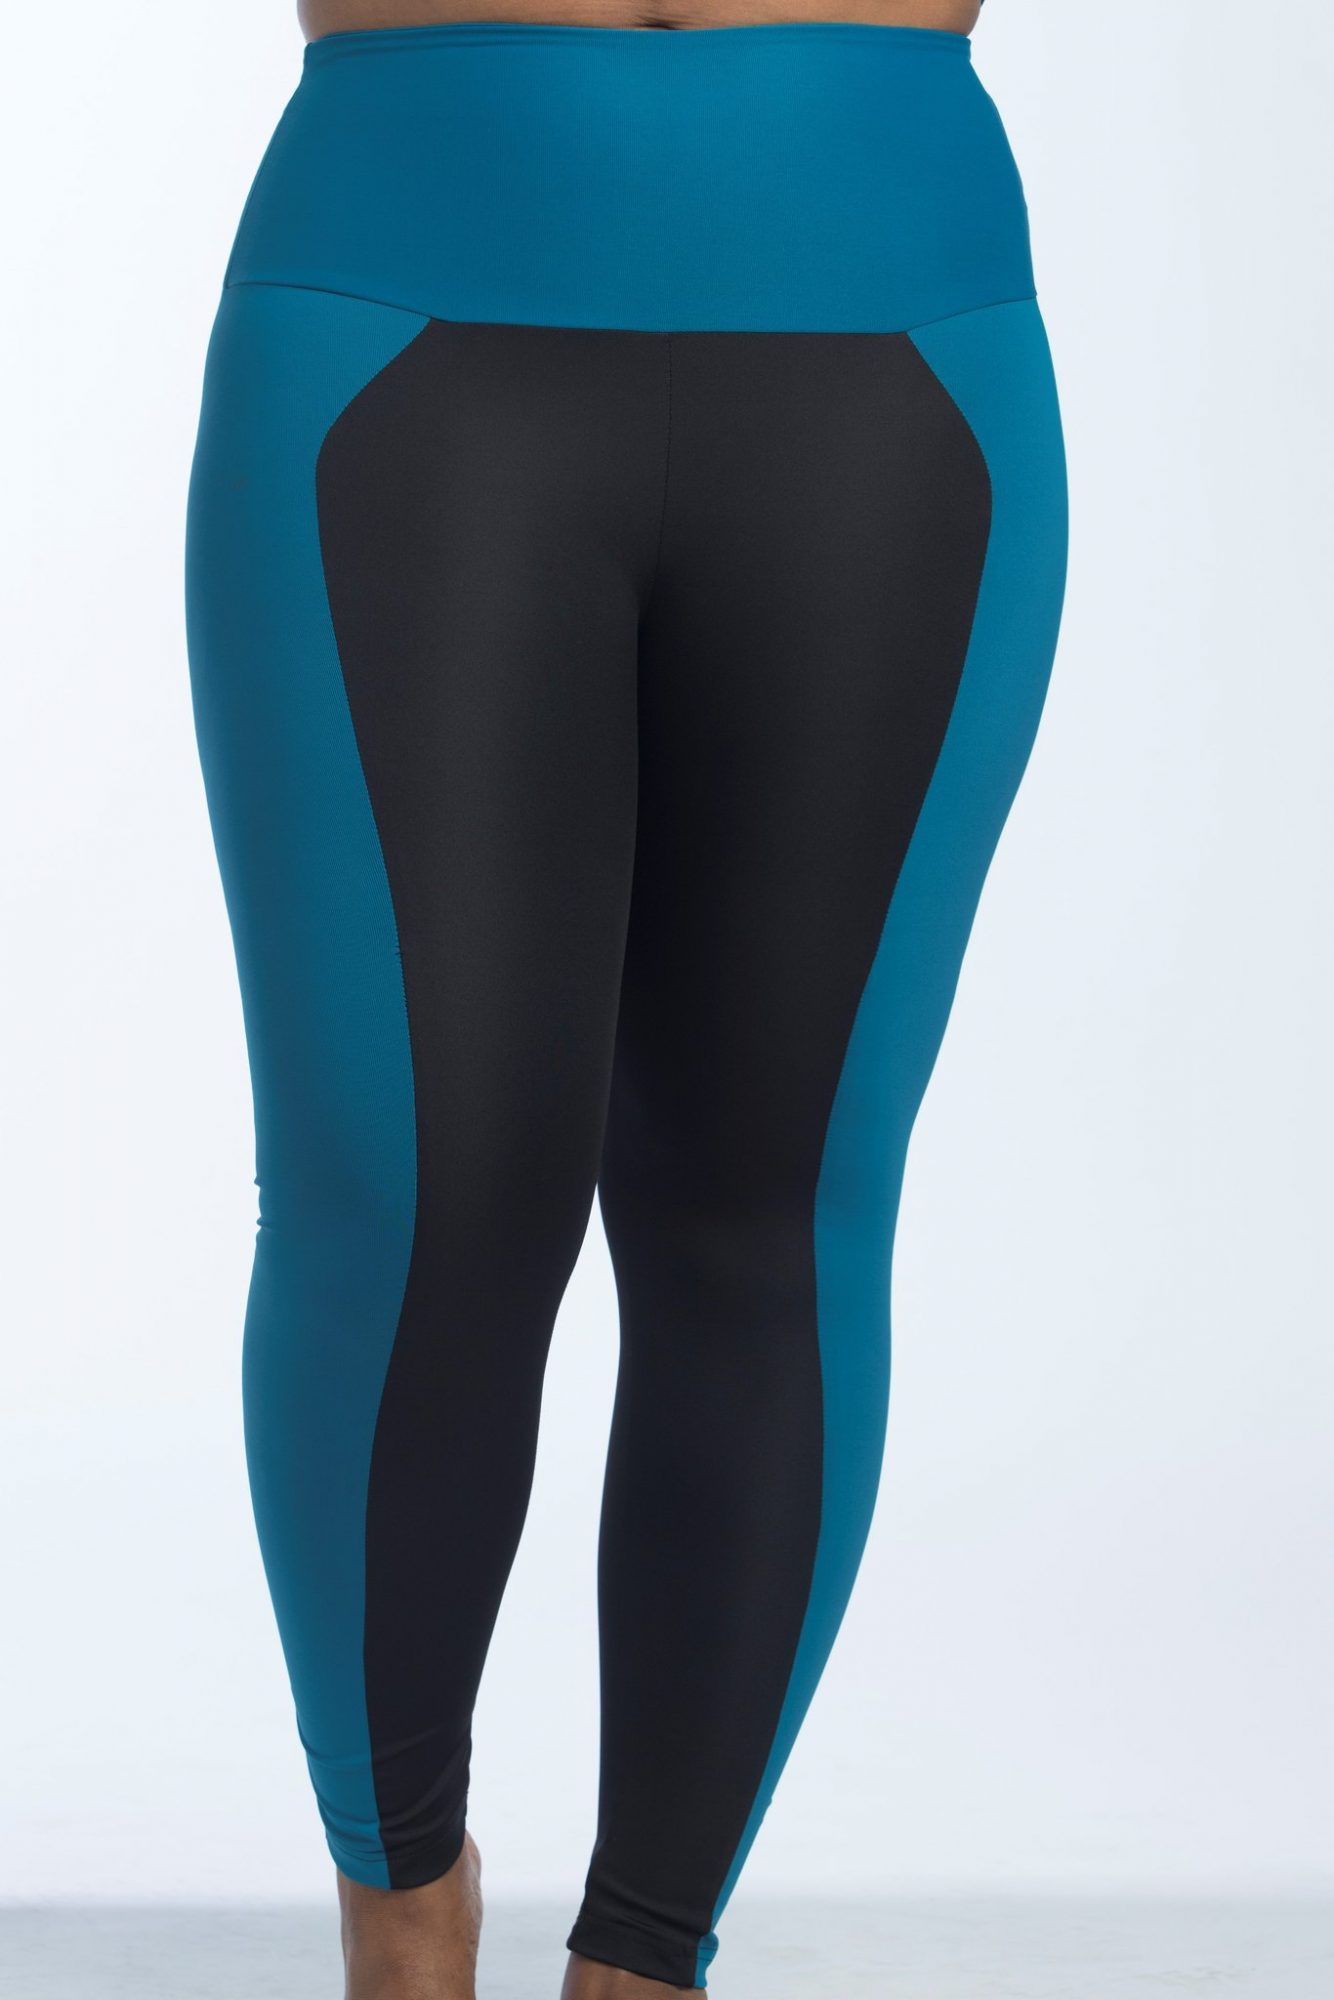 color bloack leggings